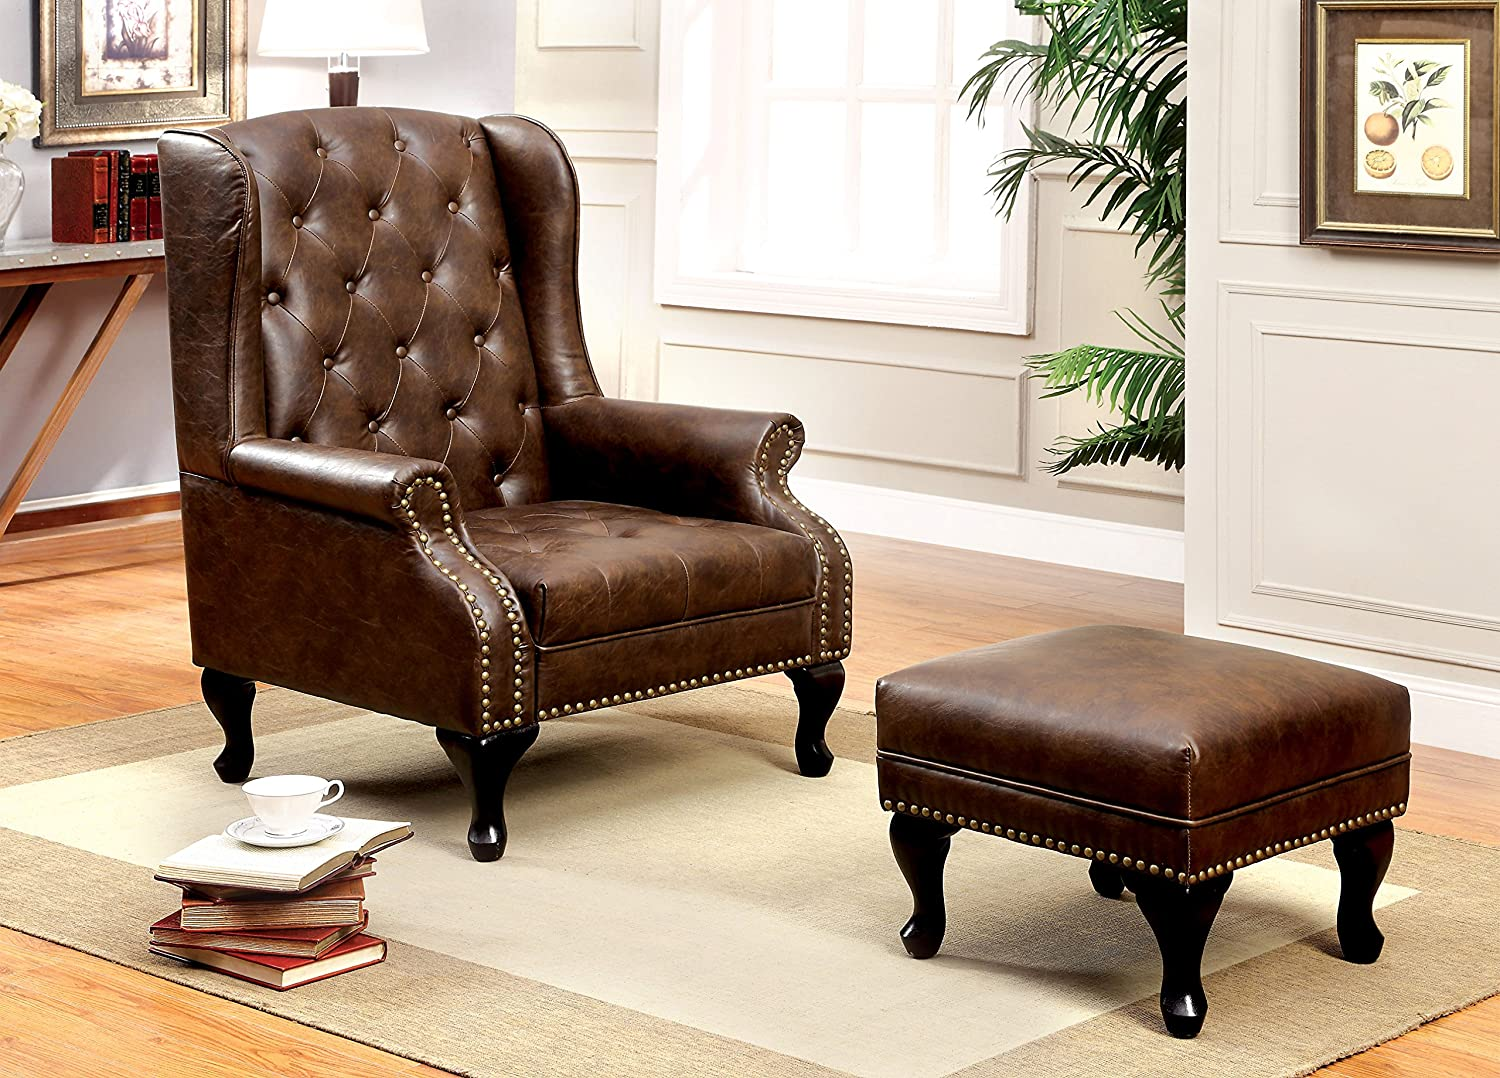 traditional wingback chairs. Amazon.com: Furniture Of America Elmas Traditional Leatherette Wingback Chair, Rustic Brown: Kitchen \u0026 Dining Chairs R